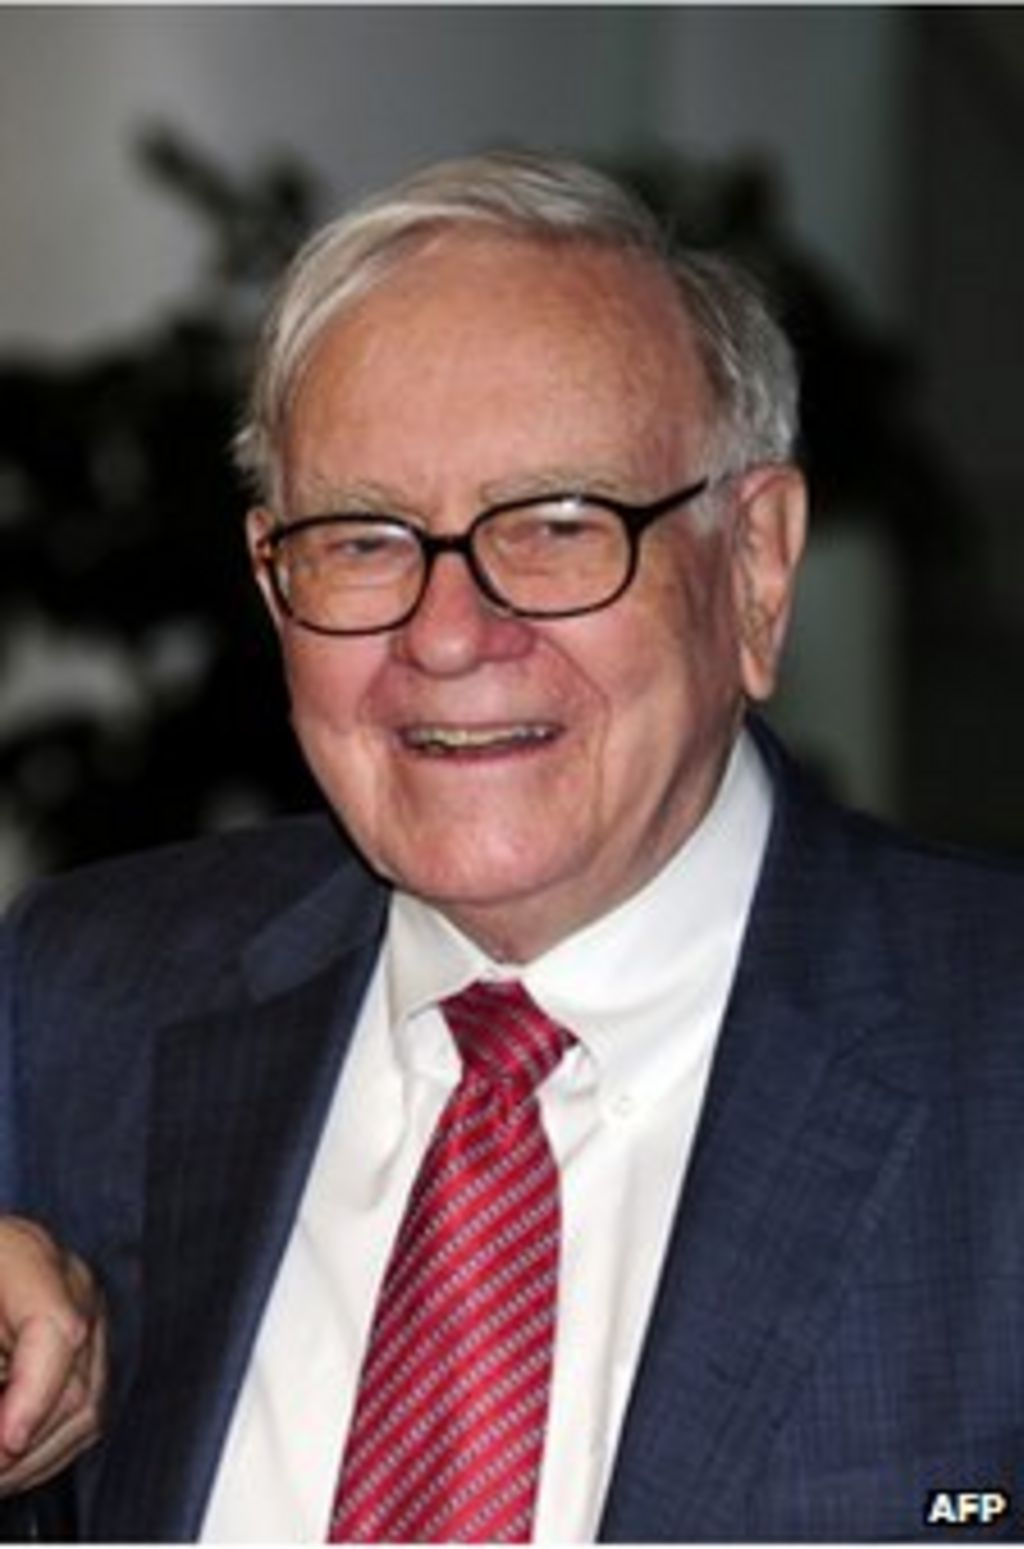 Warren Buffett admits 'I made a big mistake' over David Sokol's purchase of Lubrizol shares